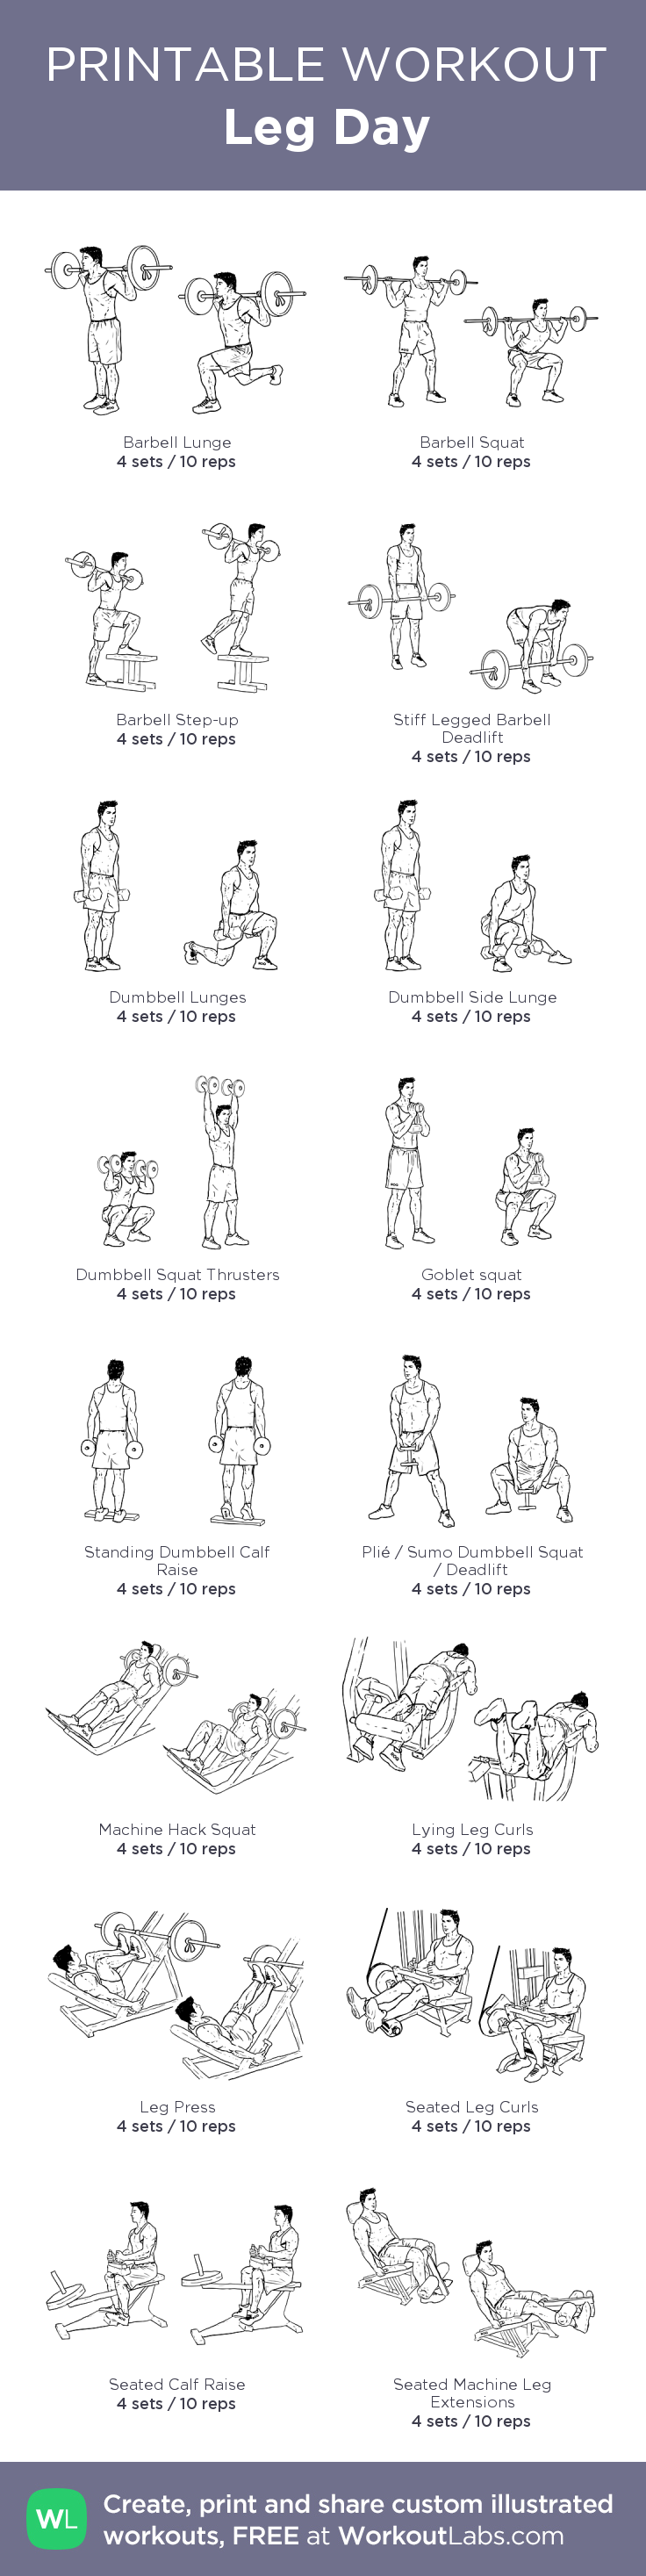 Leg Day My Custom Printable Workout By Workoutlabs Legs Killer Circuit Totally Dead Superset Customworkout